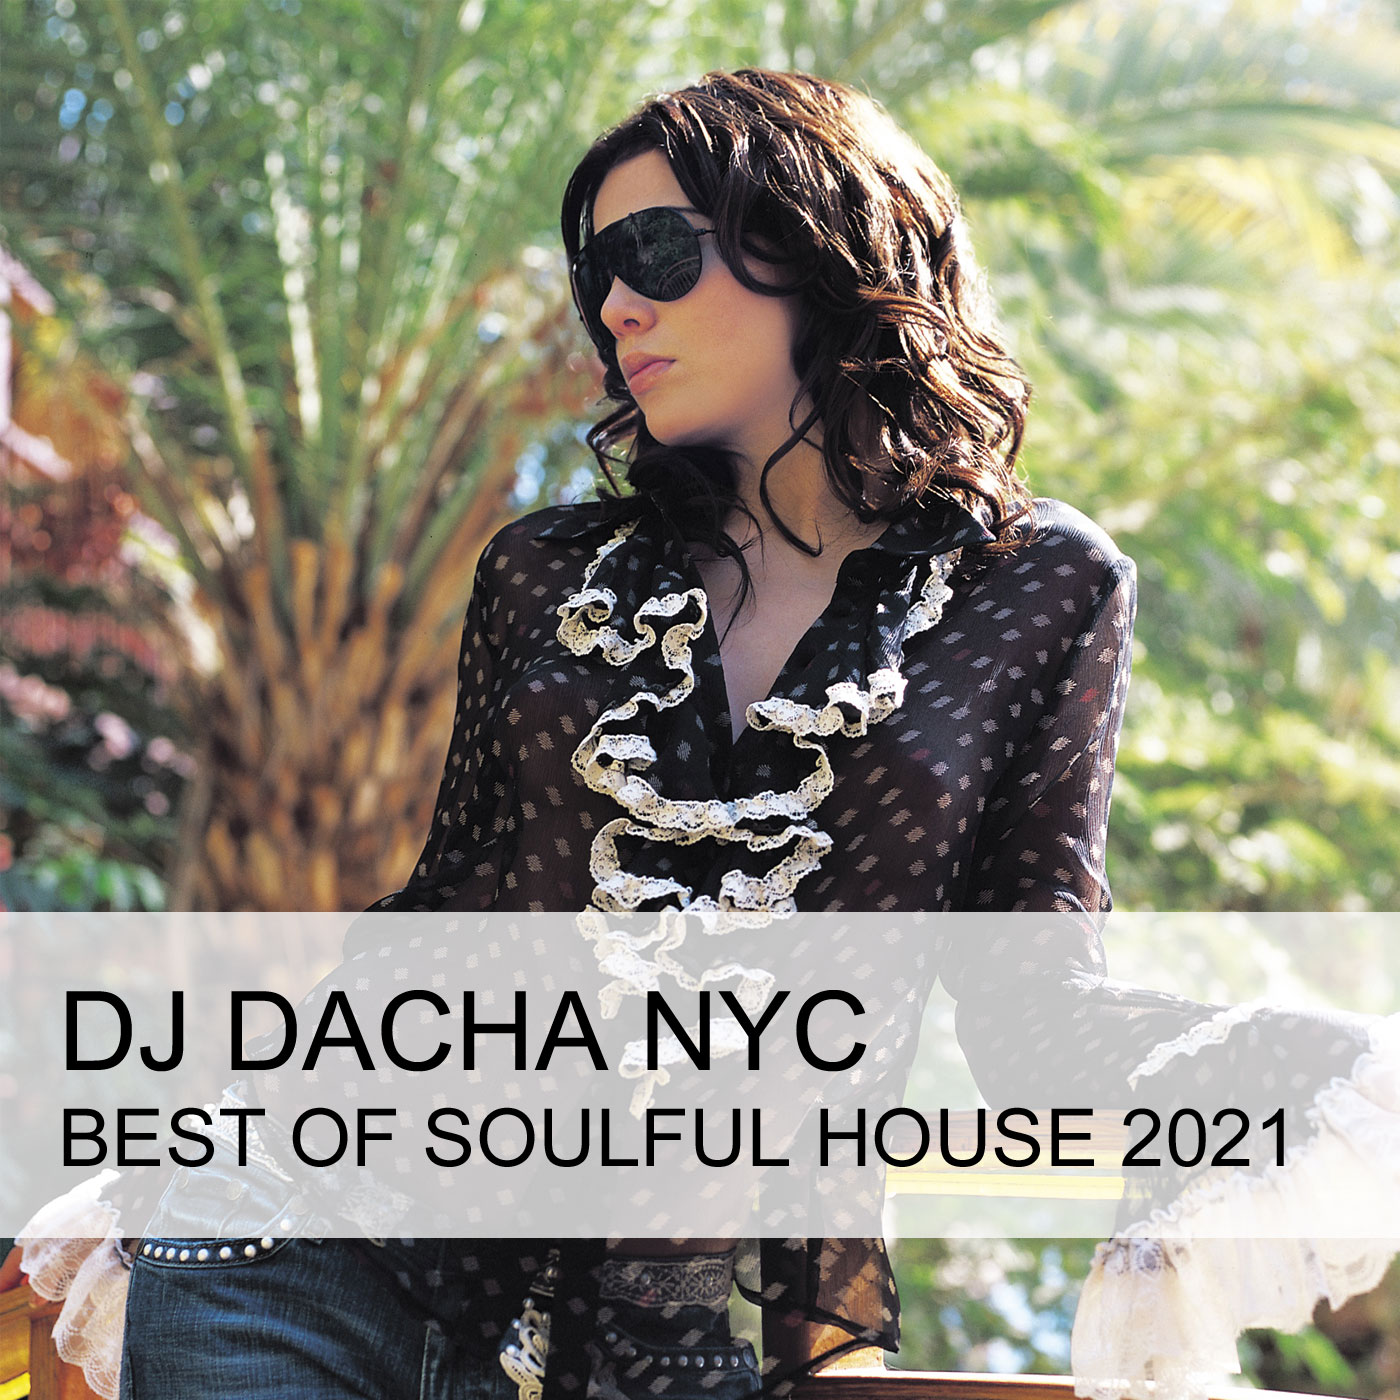 DJ Dacha 181 Best of Soulful House 2021 www.djdacha.net